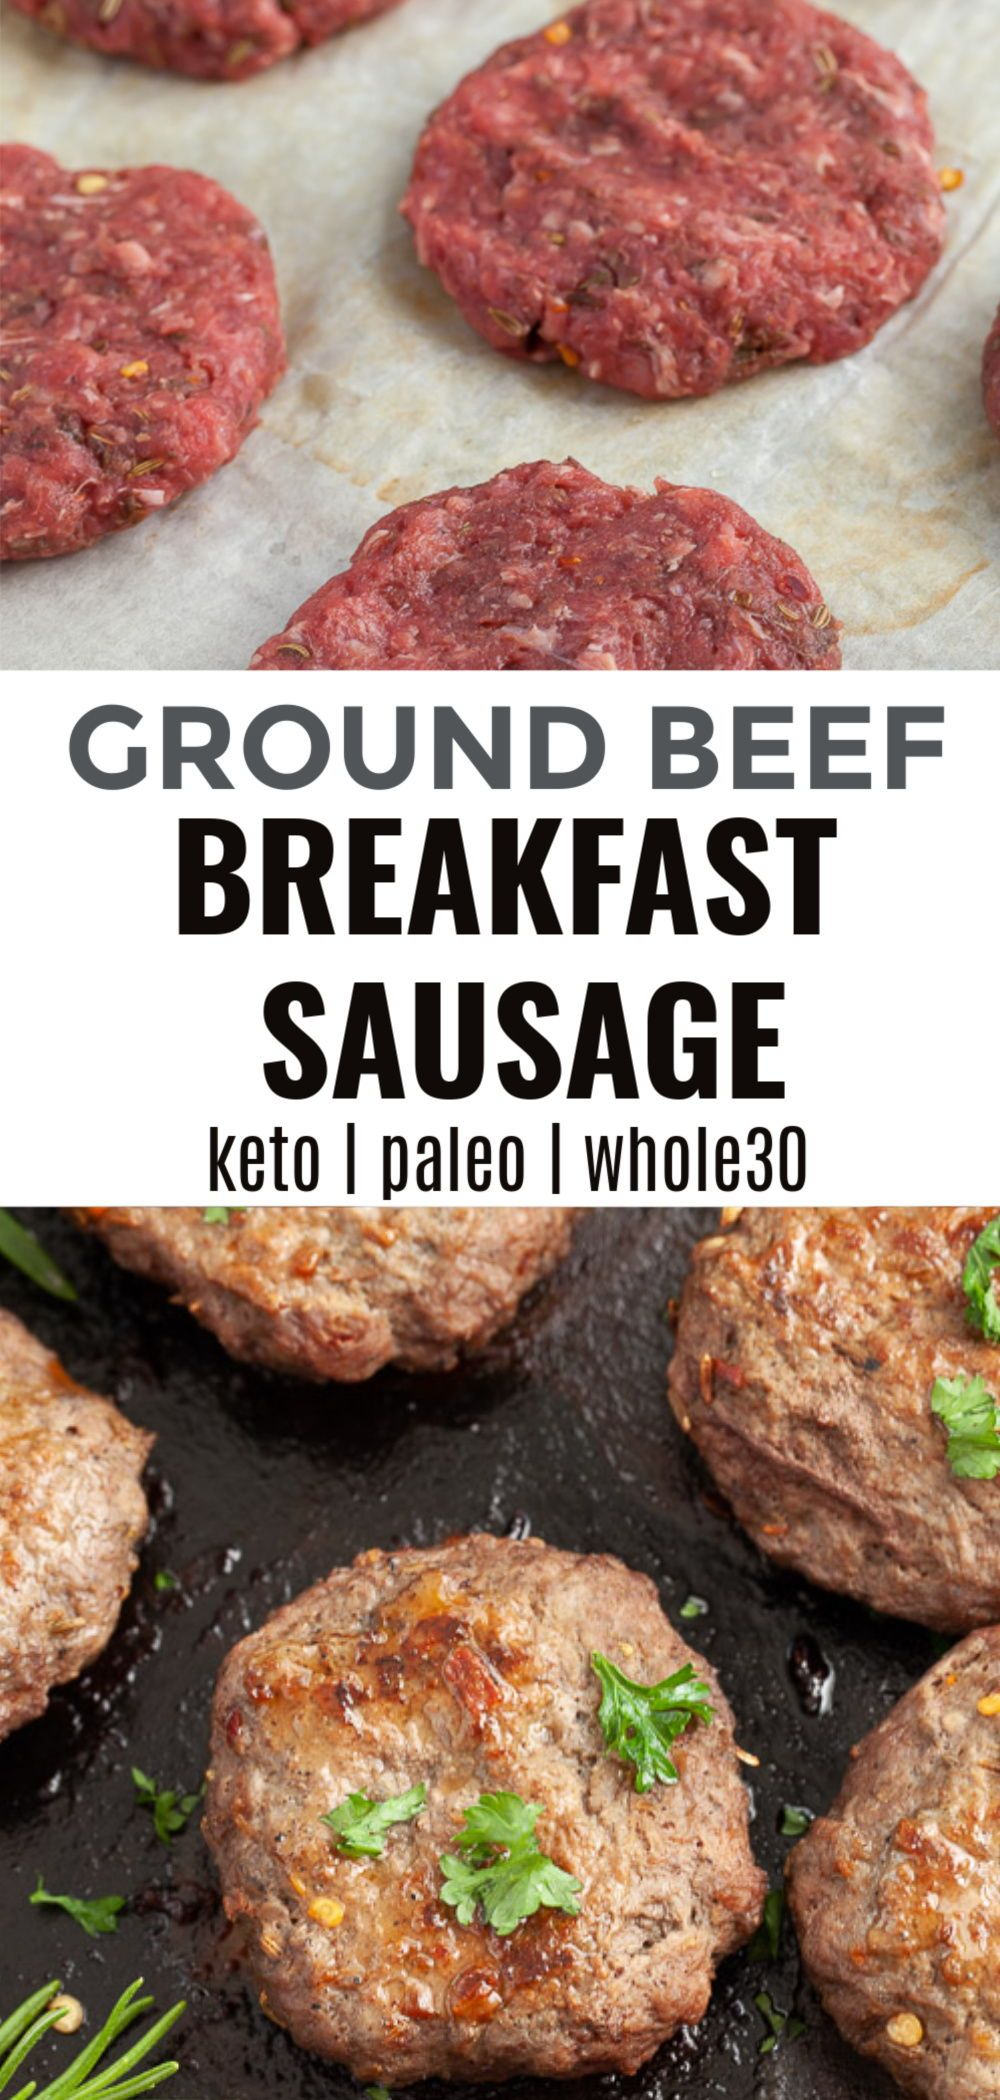 Ground Beef Breakfast Sausage Keto Whole30 Paleo In 2020 Sausage Breakfast Healthy Breakfast Recipes Ground Beef Breakfast